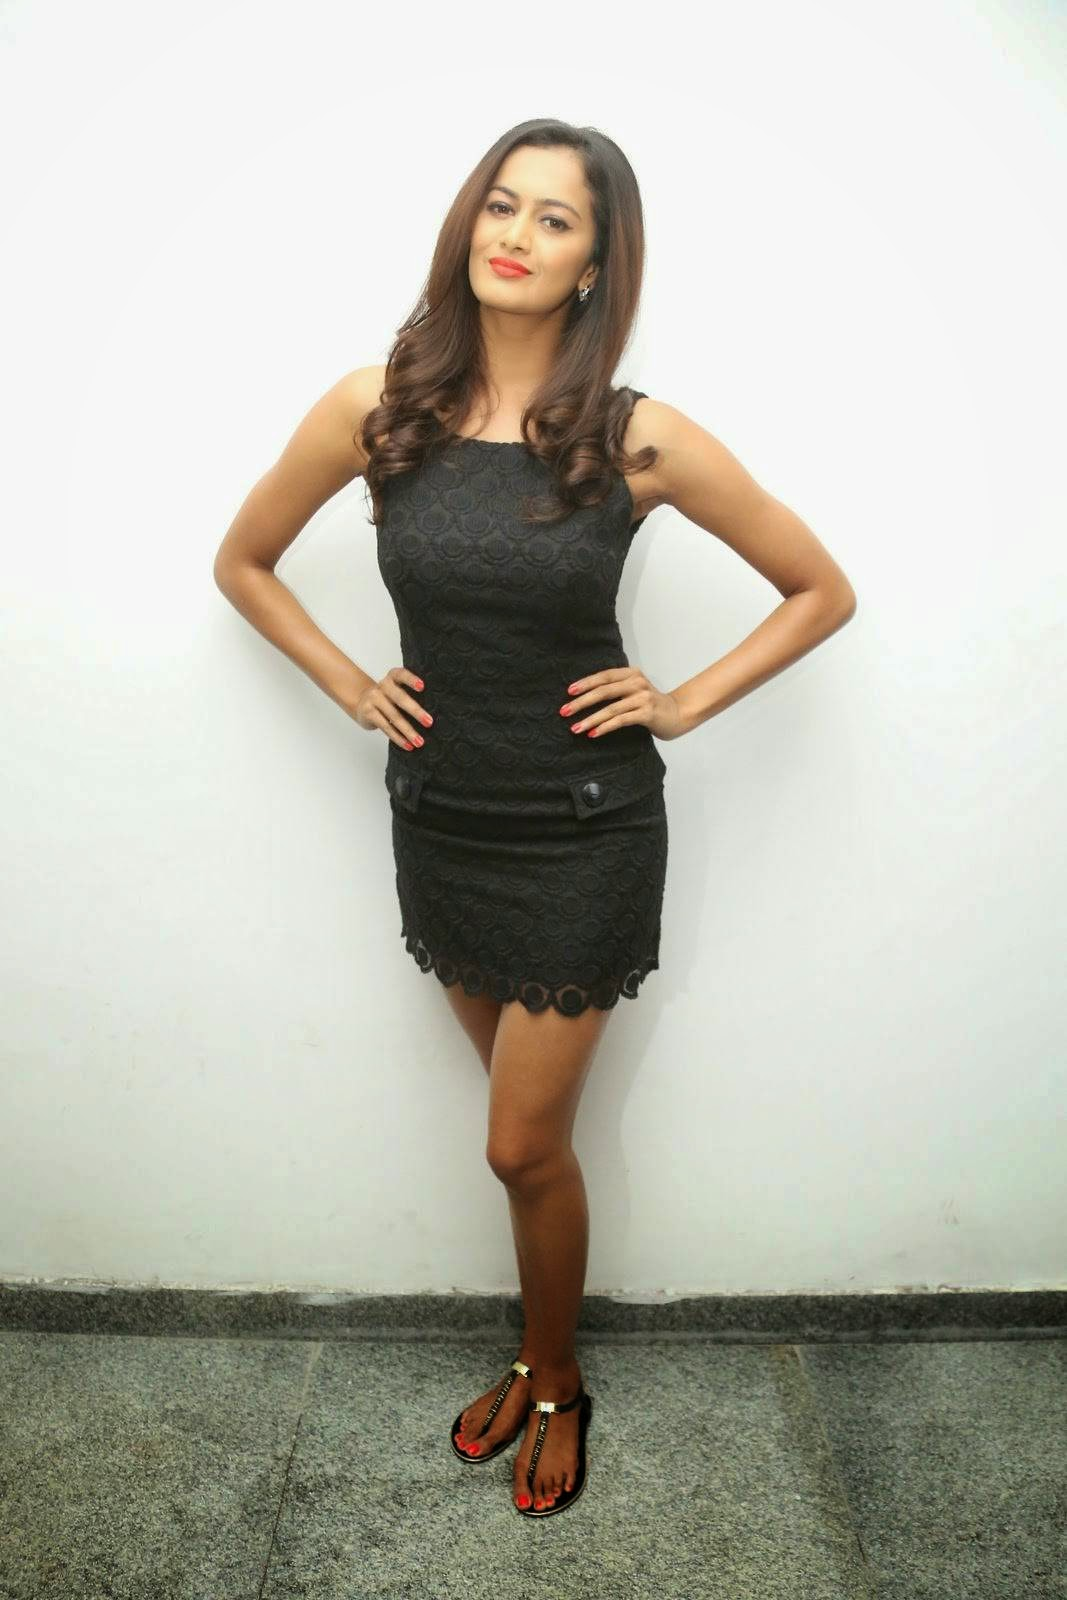 Shubra Aiyappa Photo Gallery with no Watermarks, Shubra Aiyappa Sexy Hot Figure images in Black Dress